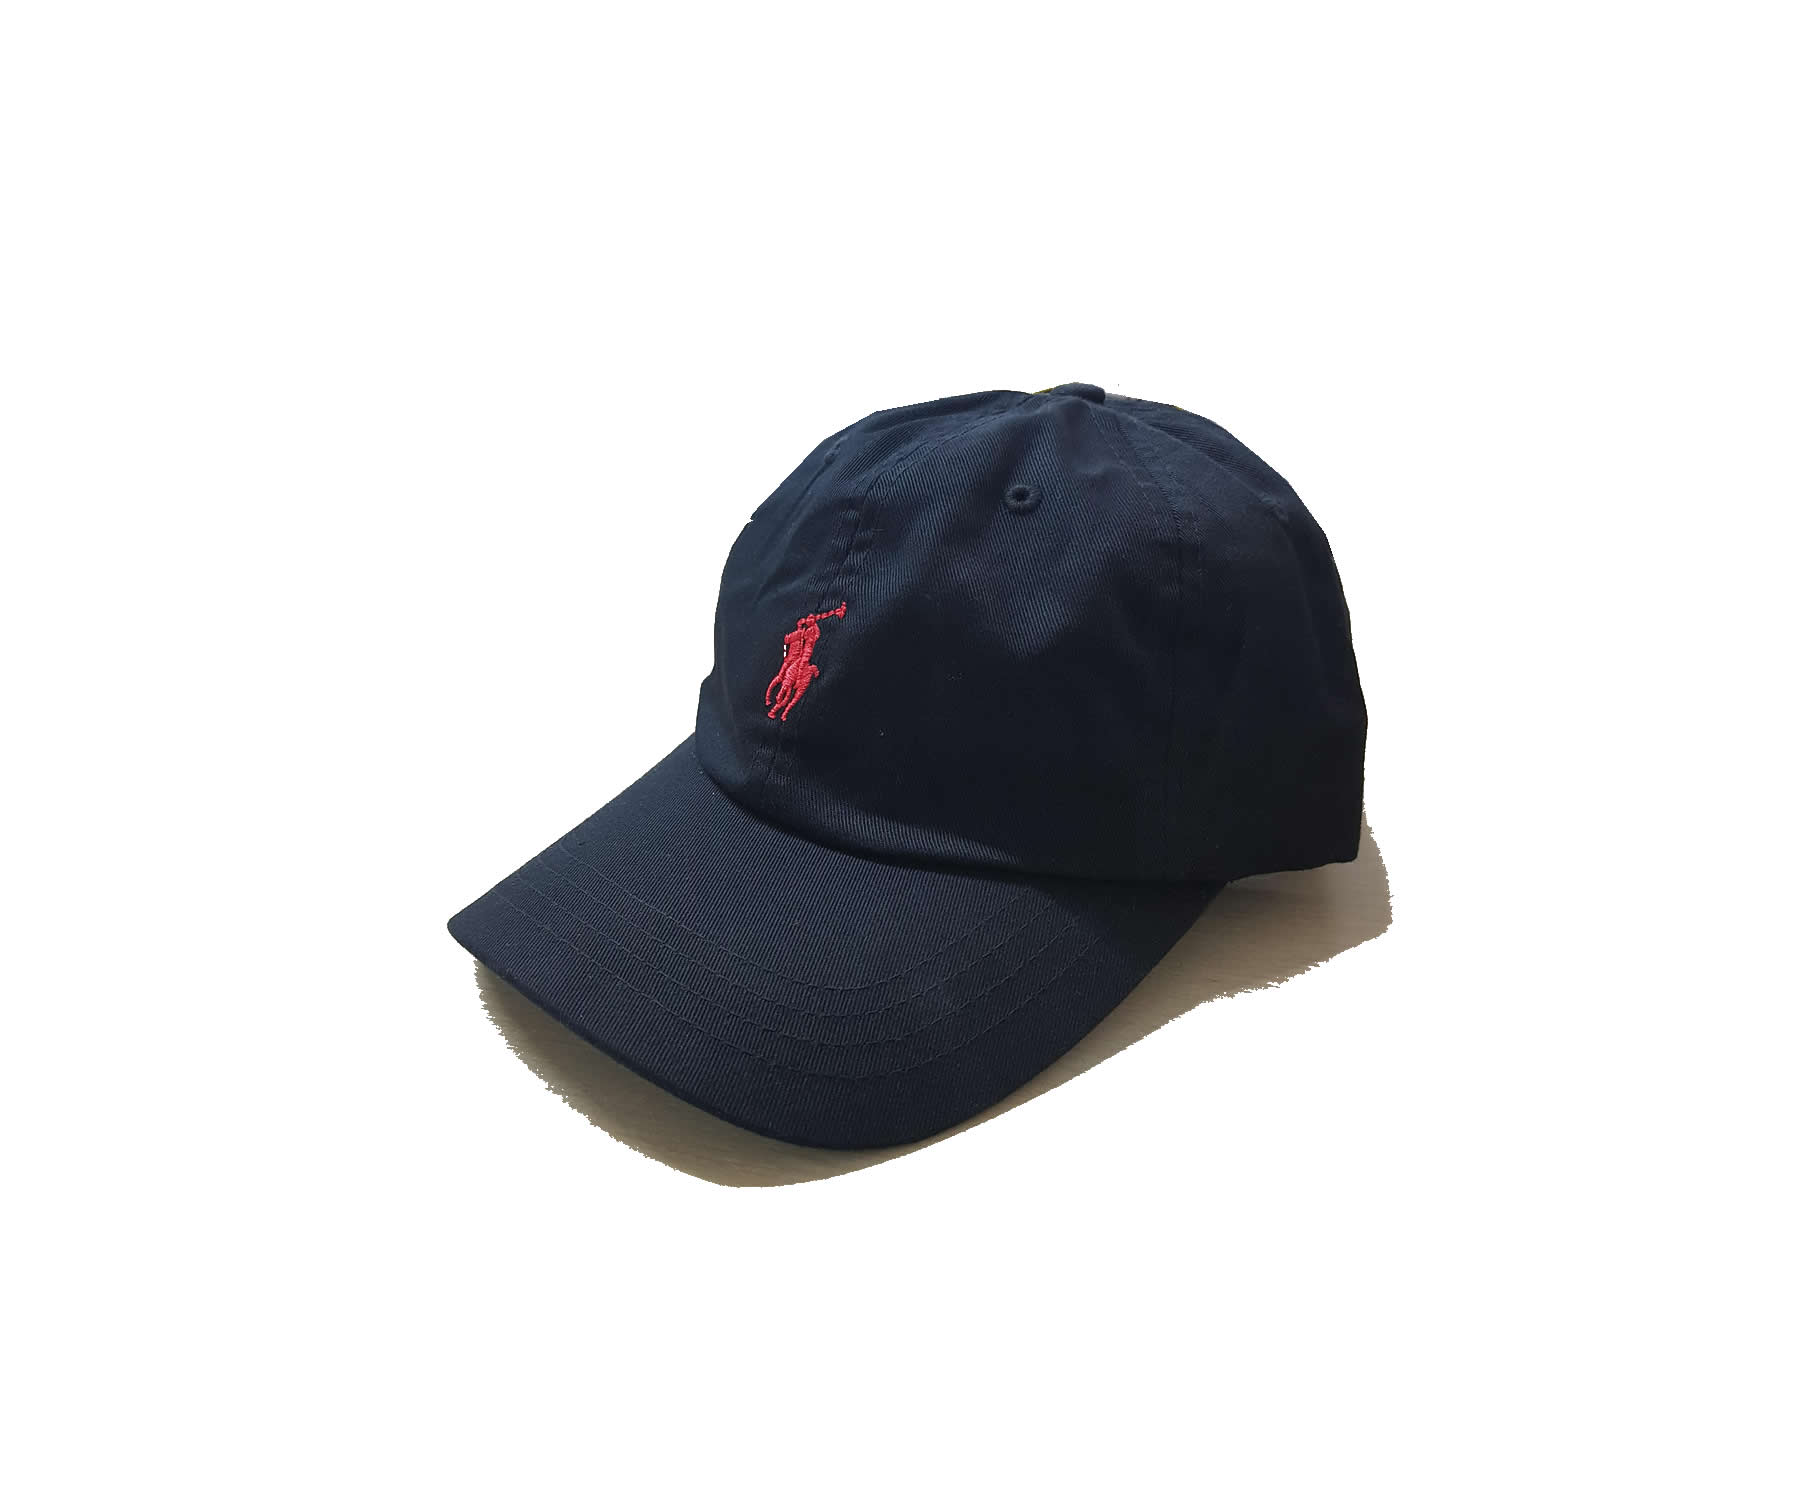 d86d920dad1 Ralph Lauren Sports Baseball Cap in Black With Red Small Pony Black. Small Red  Pony